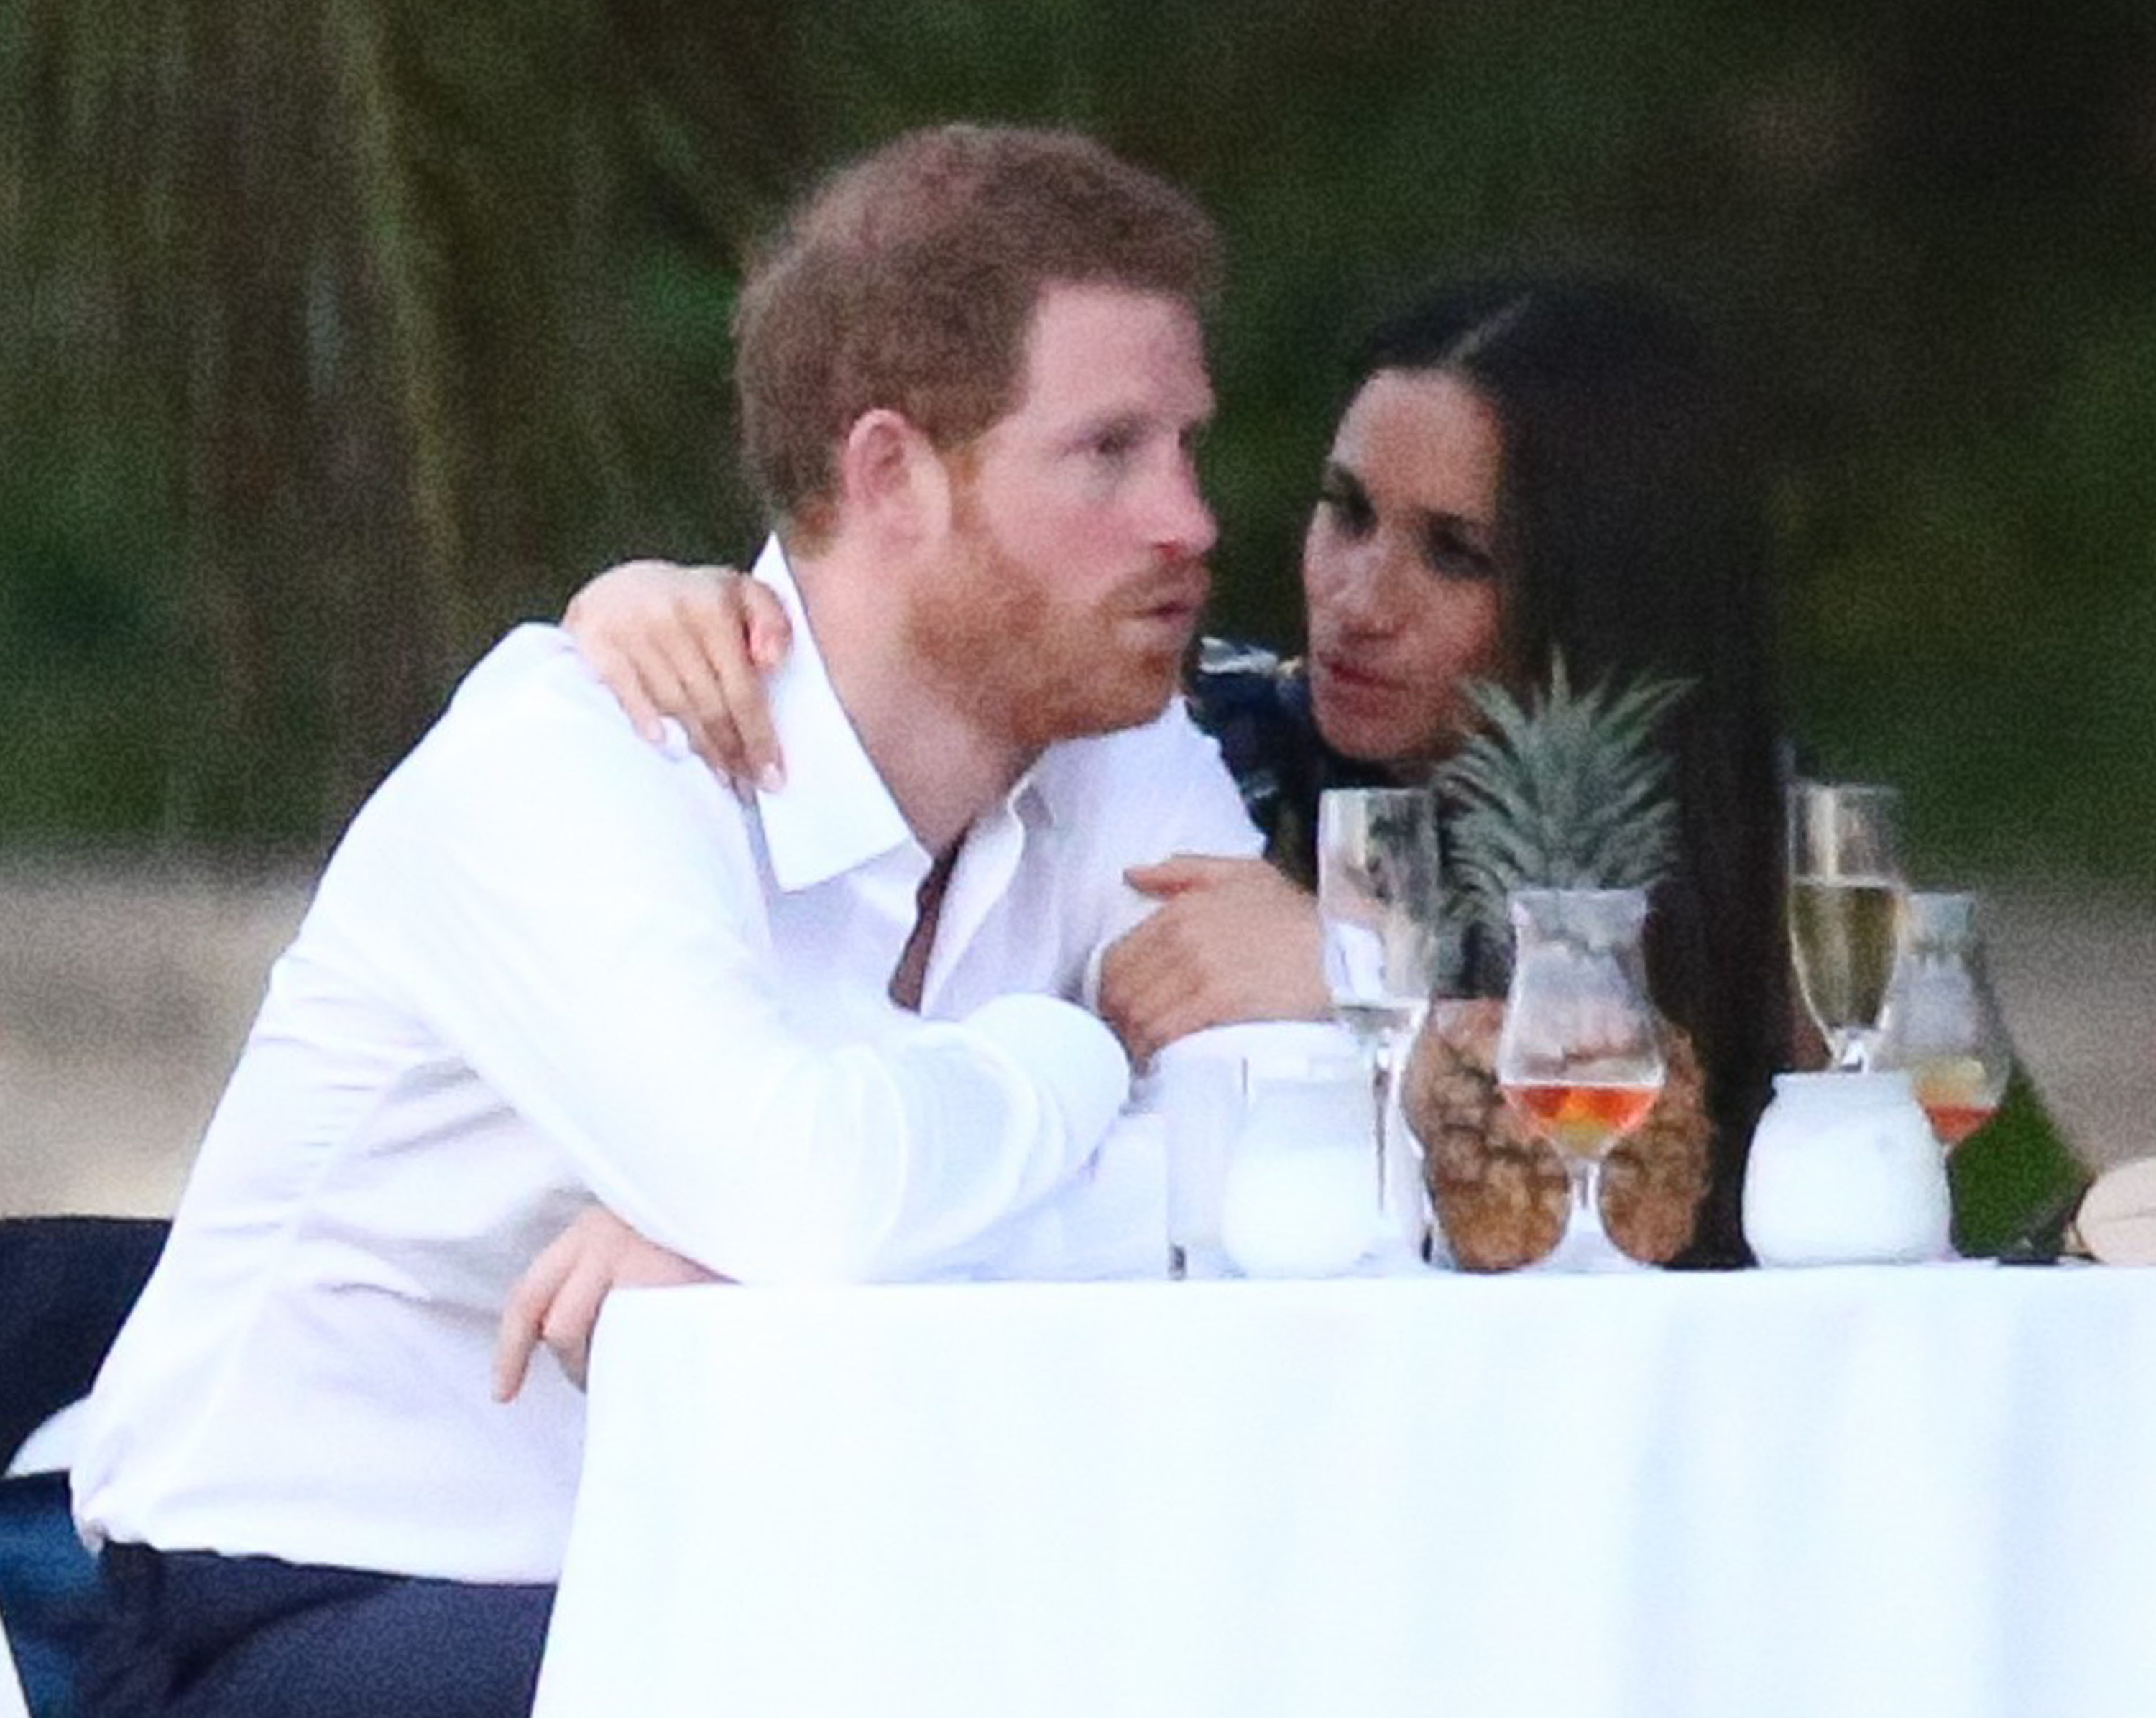 Prince Harry and Meghan Markle expected to get engaged by the end of the year